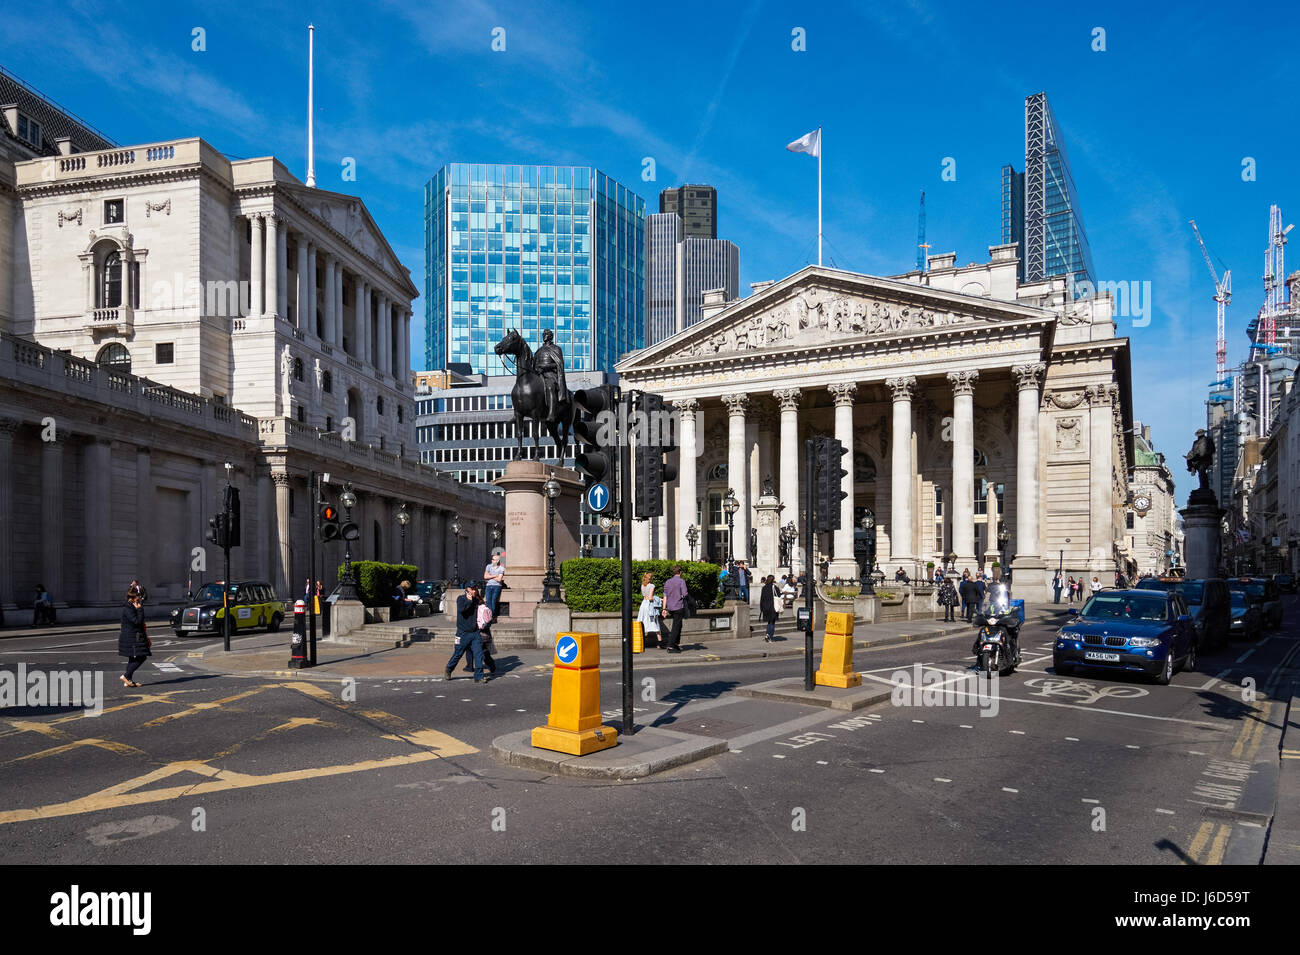 Bank junction with the Bank of England and the Royal Exchange buildings in London, England United Kingdom UK - Stock Image